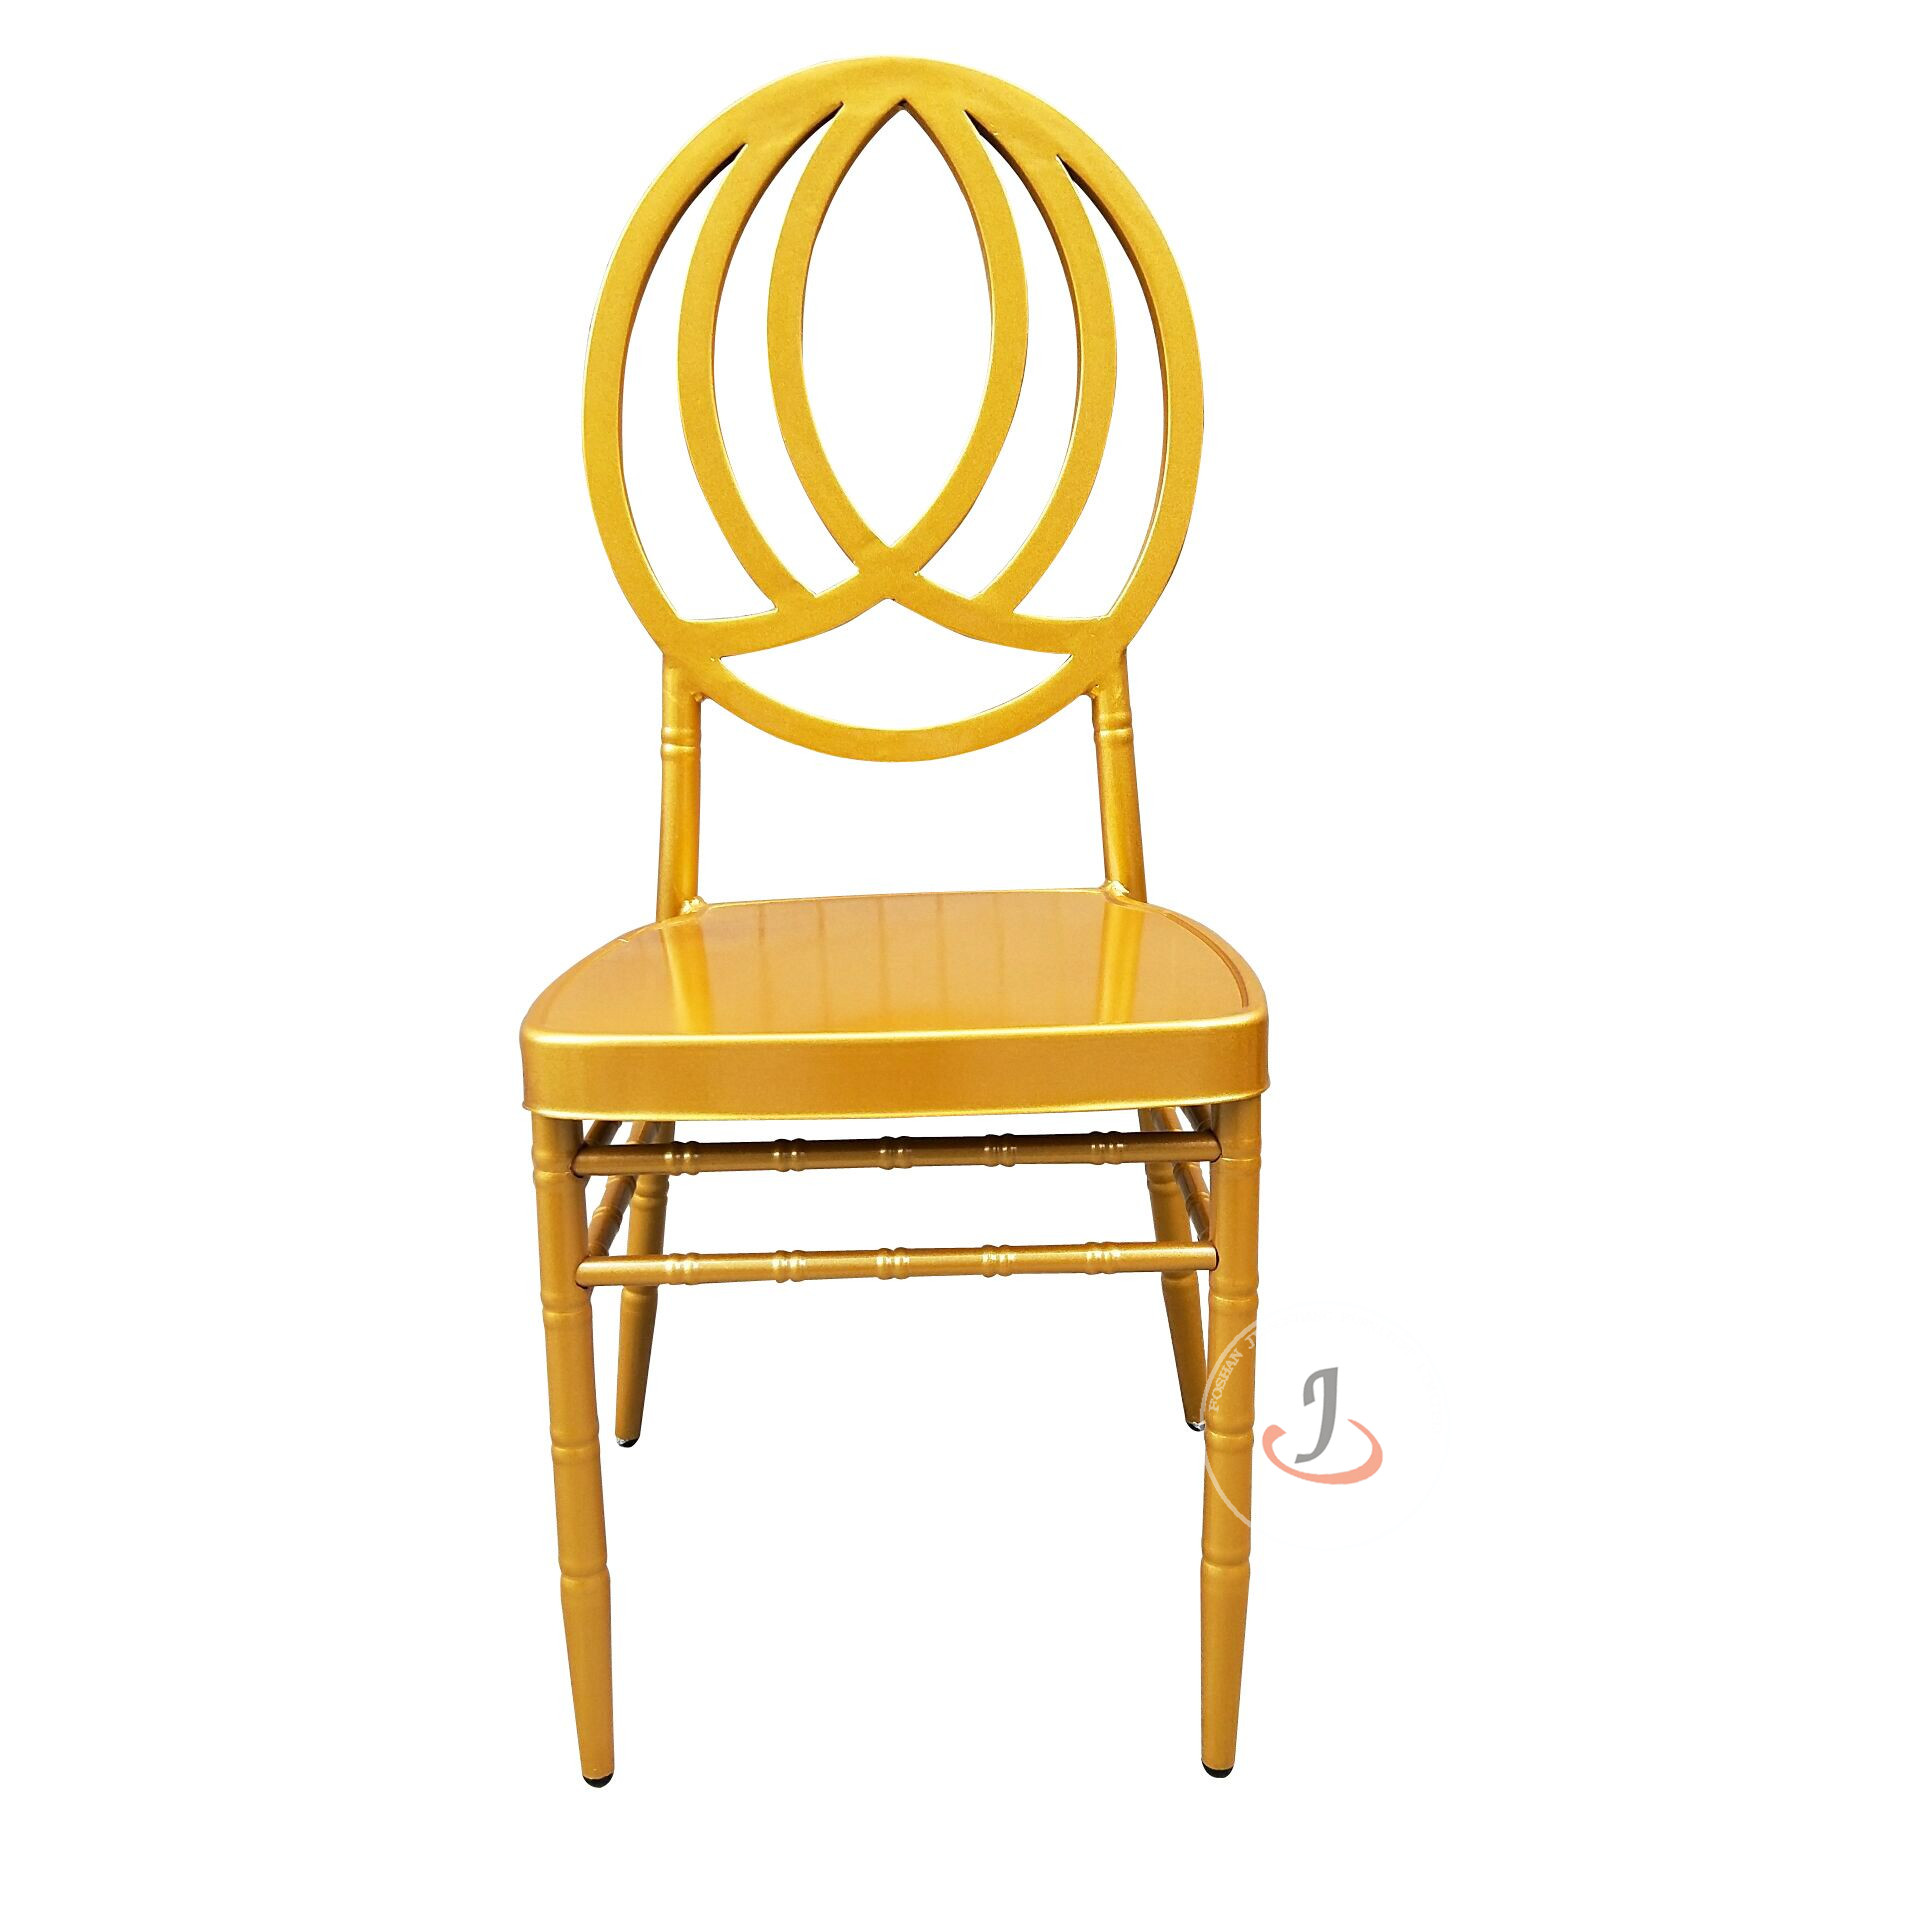 Phoenix Chair SF-ZJ02 Featured Image